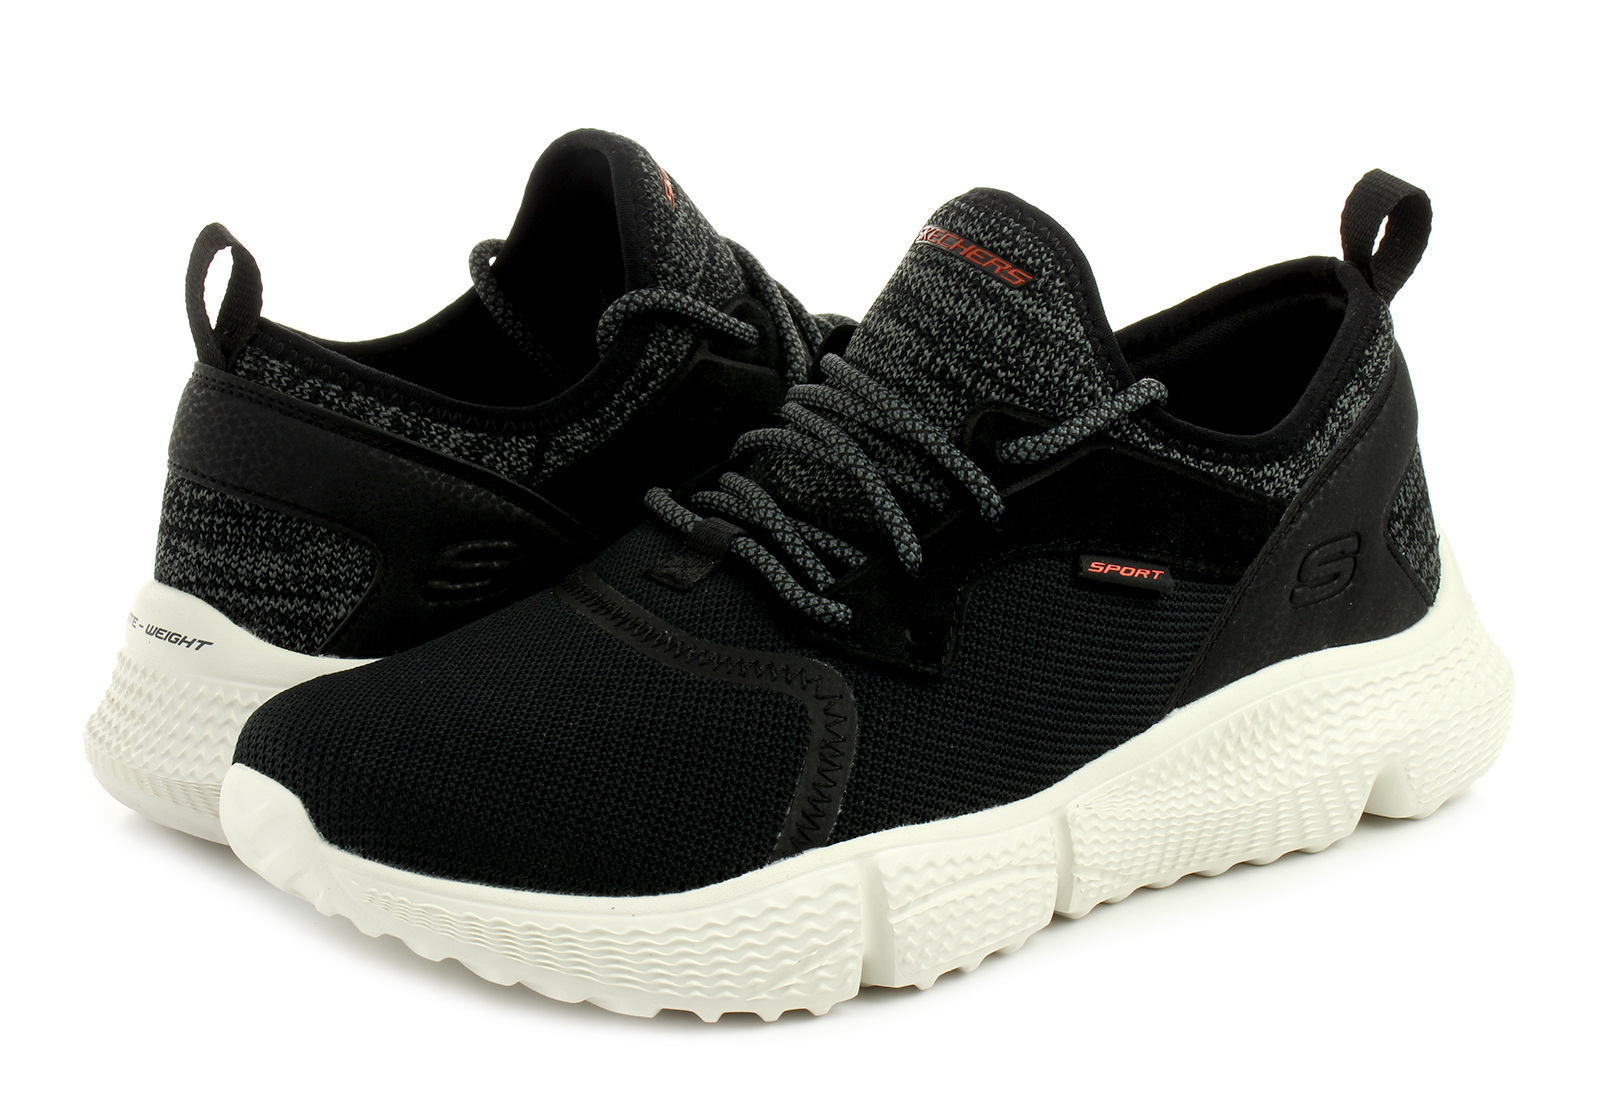 2019 am besten kinder bis zu 60% sparen Skechers Shoes - Zubazz - Coastton - 51902-blk - Online shop for sneakers,  shoes and boots